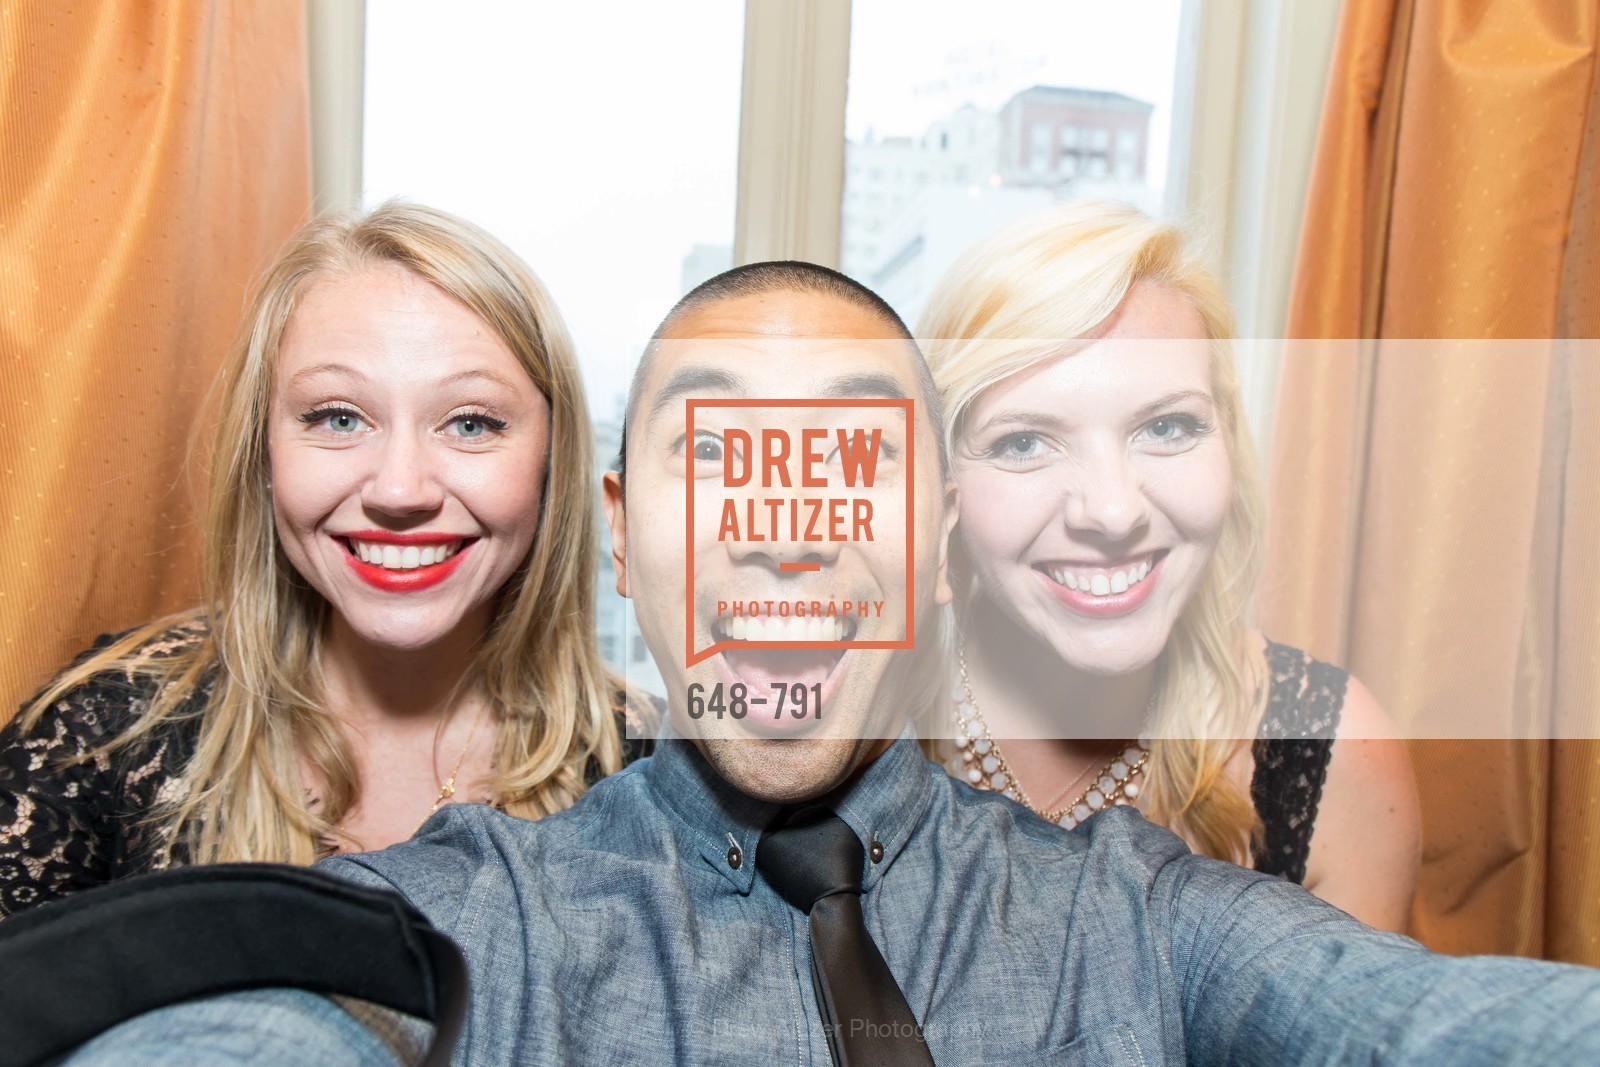 Devin Patrick, Alanna Adler, SAN FRANCISCO HERITAGE Soiree 2015, US, April 18th, 2015,Drew Altizer, Drew Altizer Photography, full-service agency, private events, San Francisco photographer, photographer california